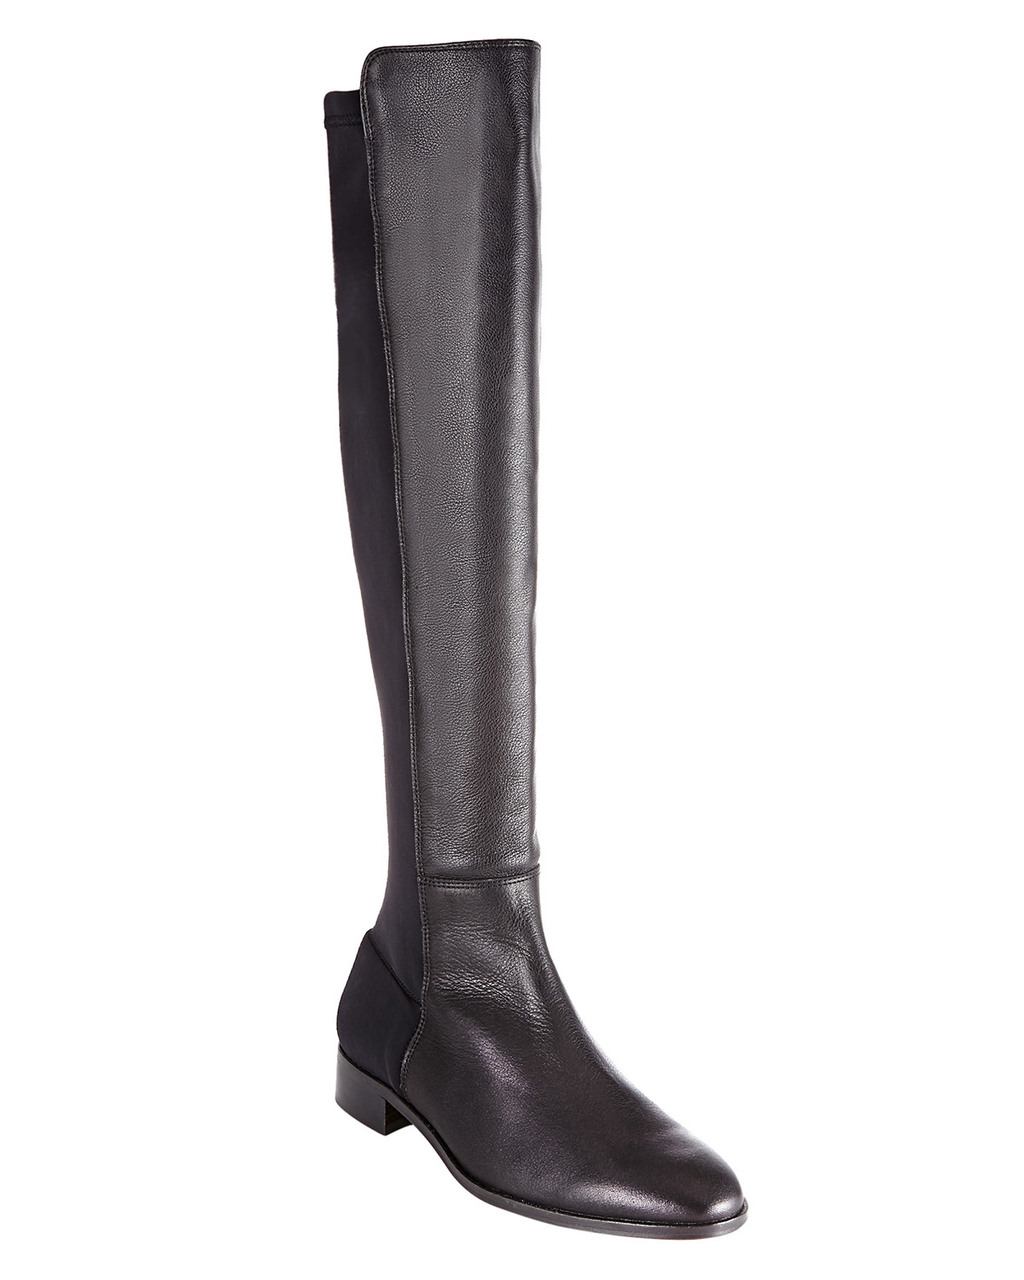 Amber Stretch Long Boot - predominant colour: black; occasions: casual, creative work; material: leather; heel height: mid; heel: block; toe: round toe; boot length: over the knee; style: standard; finish: plain; pattern: plain; season: a/w 2015; wardrobe: investment